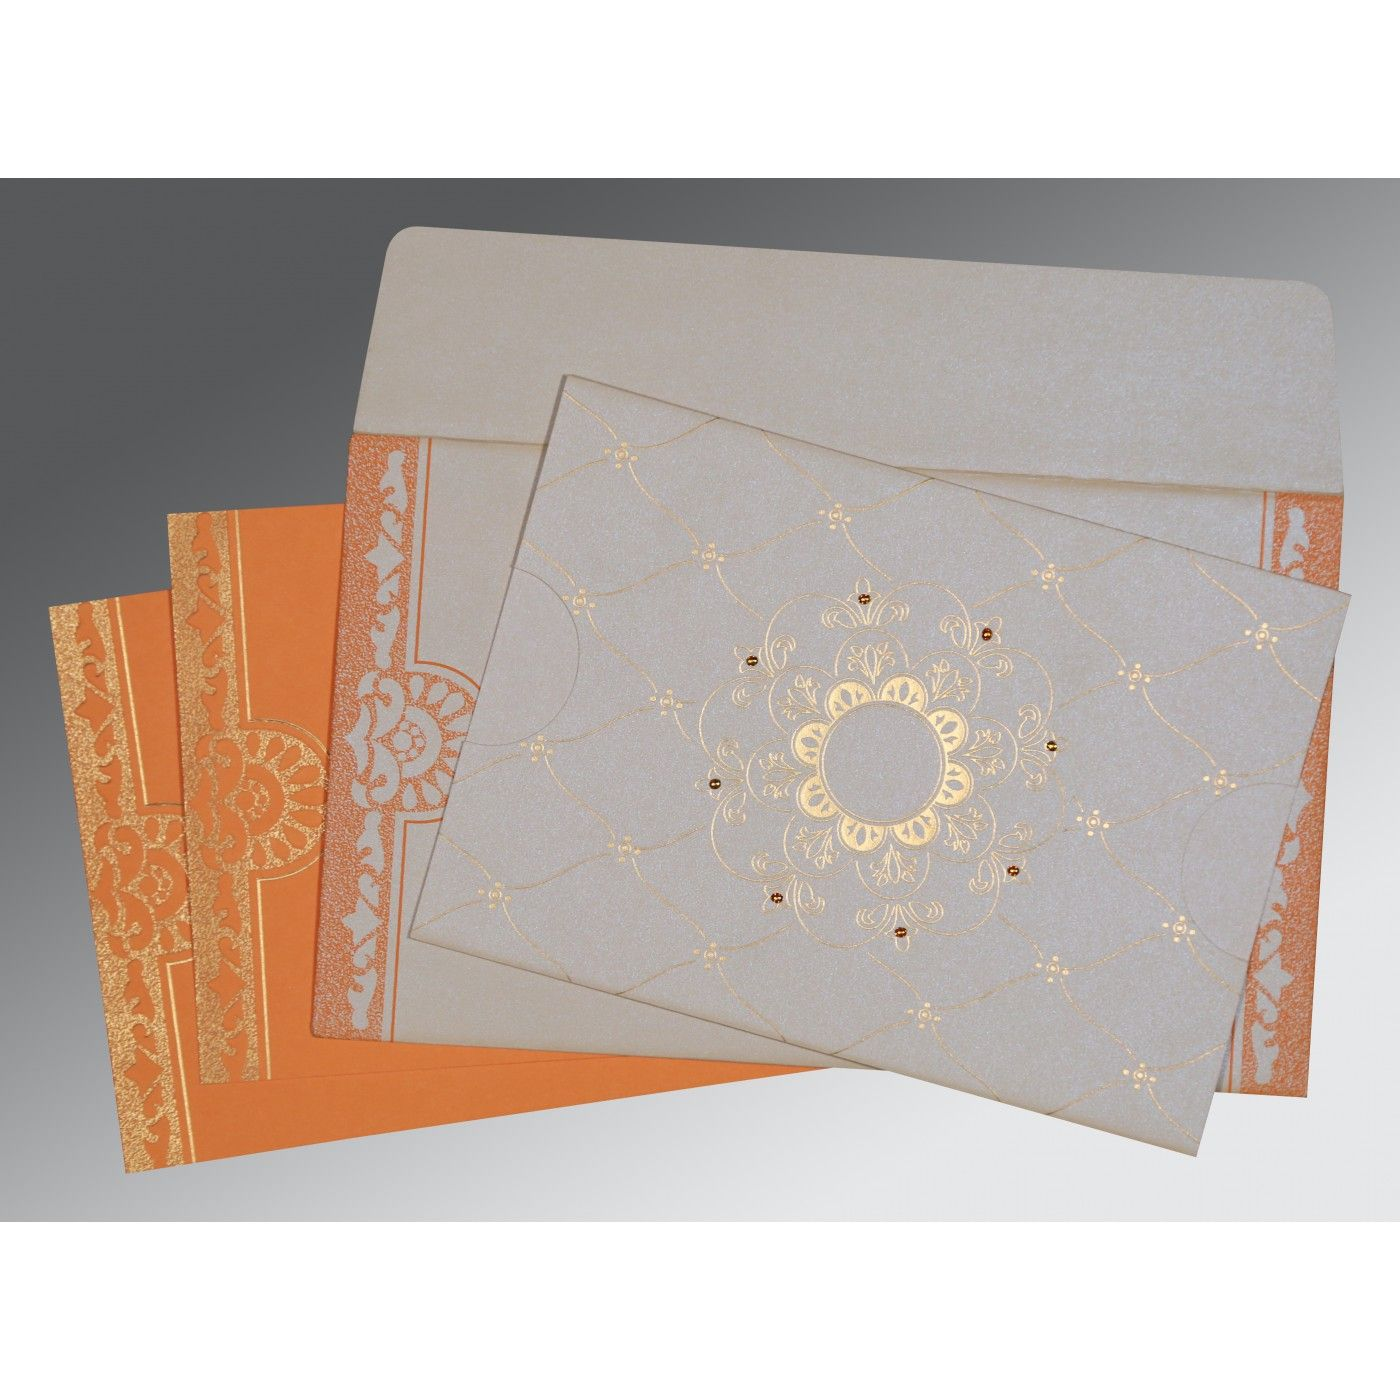 OFF-WHITE SHIMMERY FLORAL THEMED - SCREEN PRINTED WEDDING CARD : CG-8227D - IndianWeddingCards